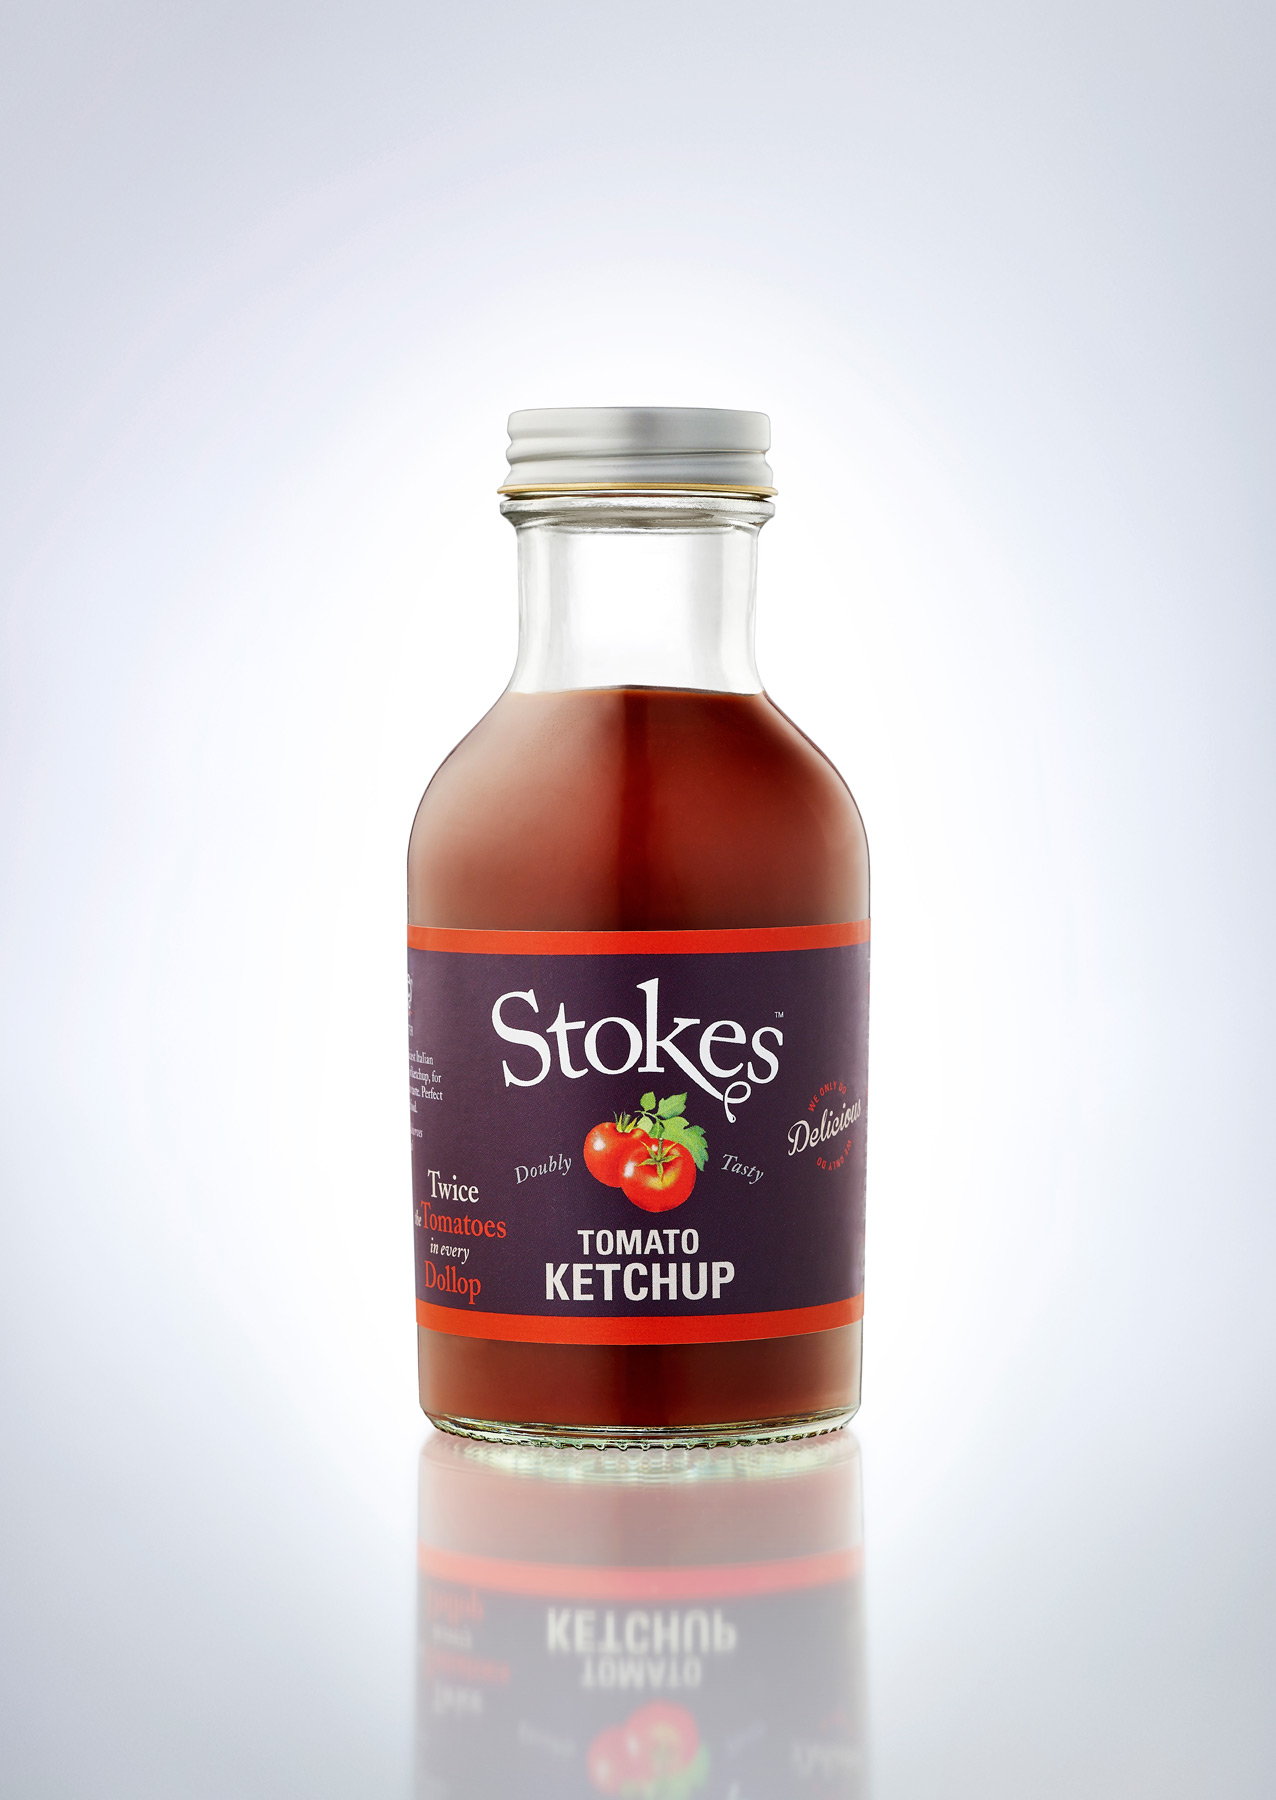 Stokes Tomato Ketchup on white